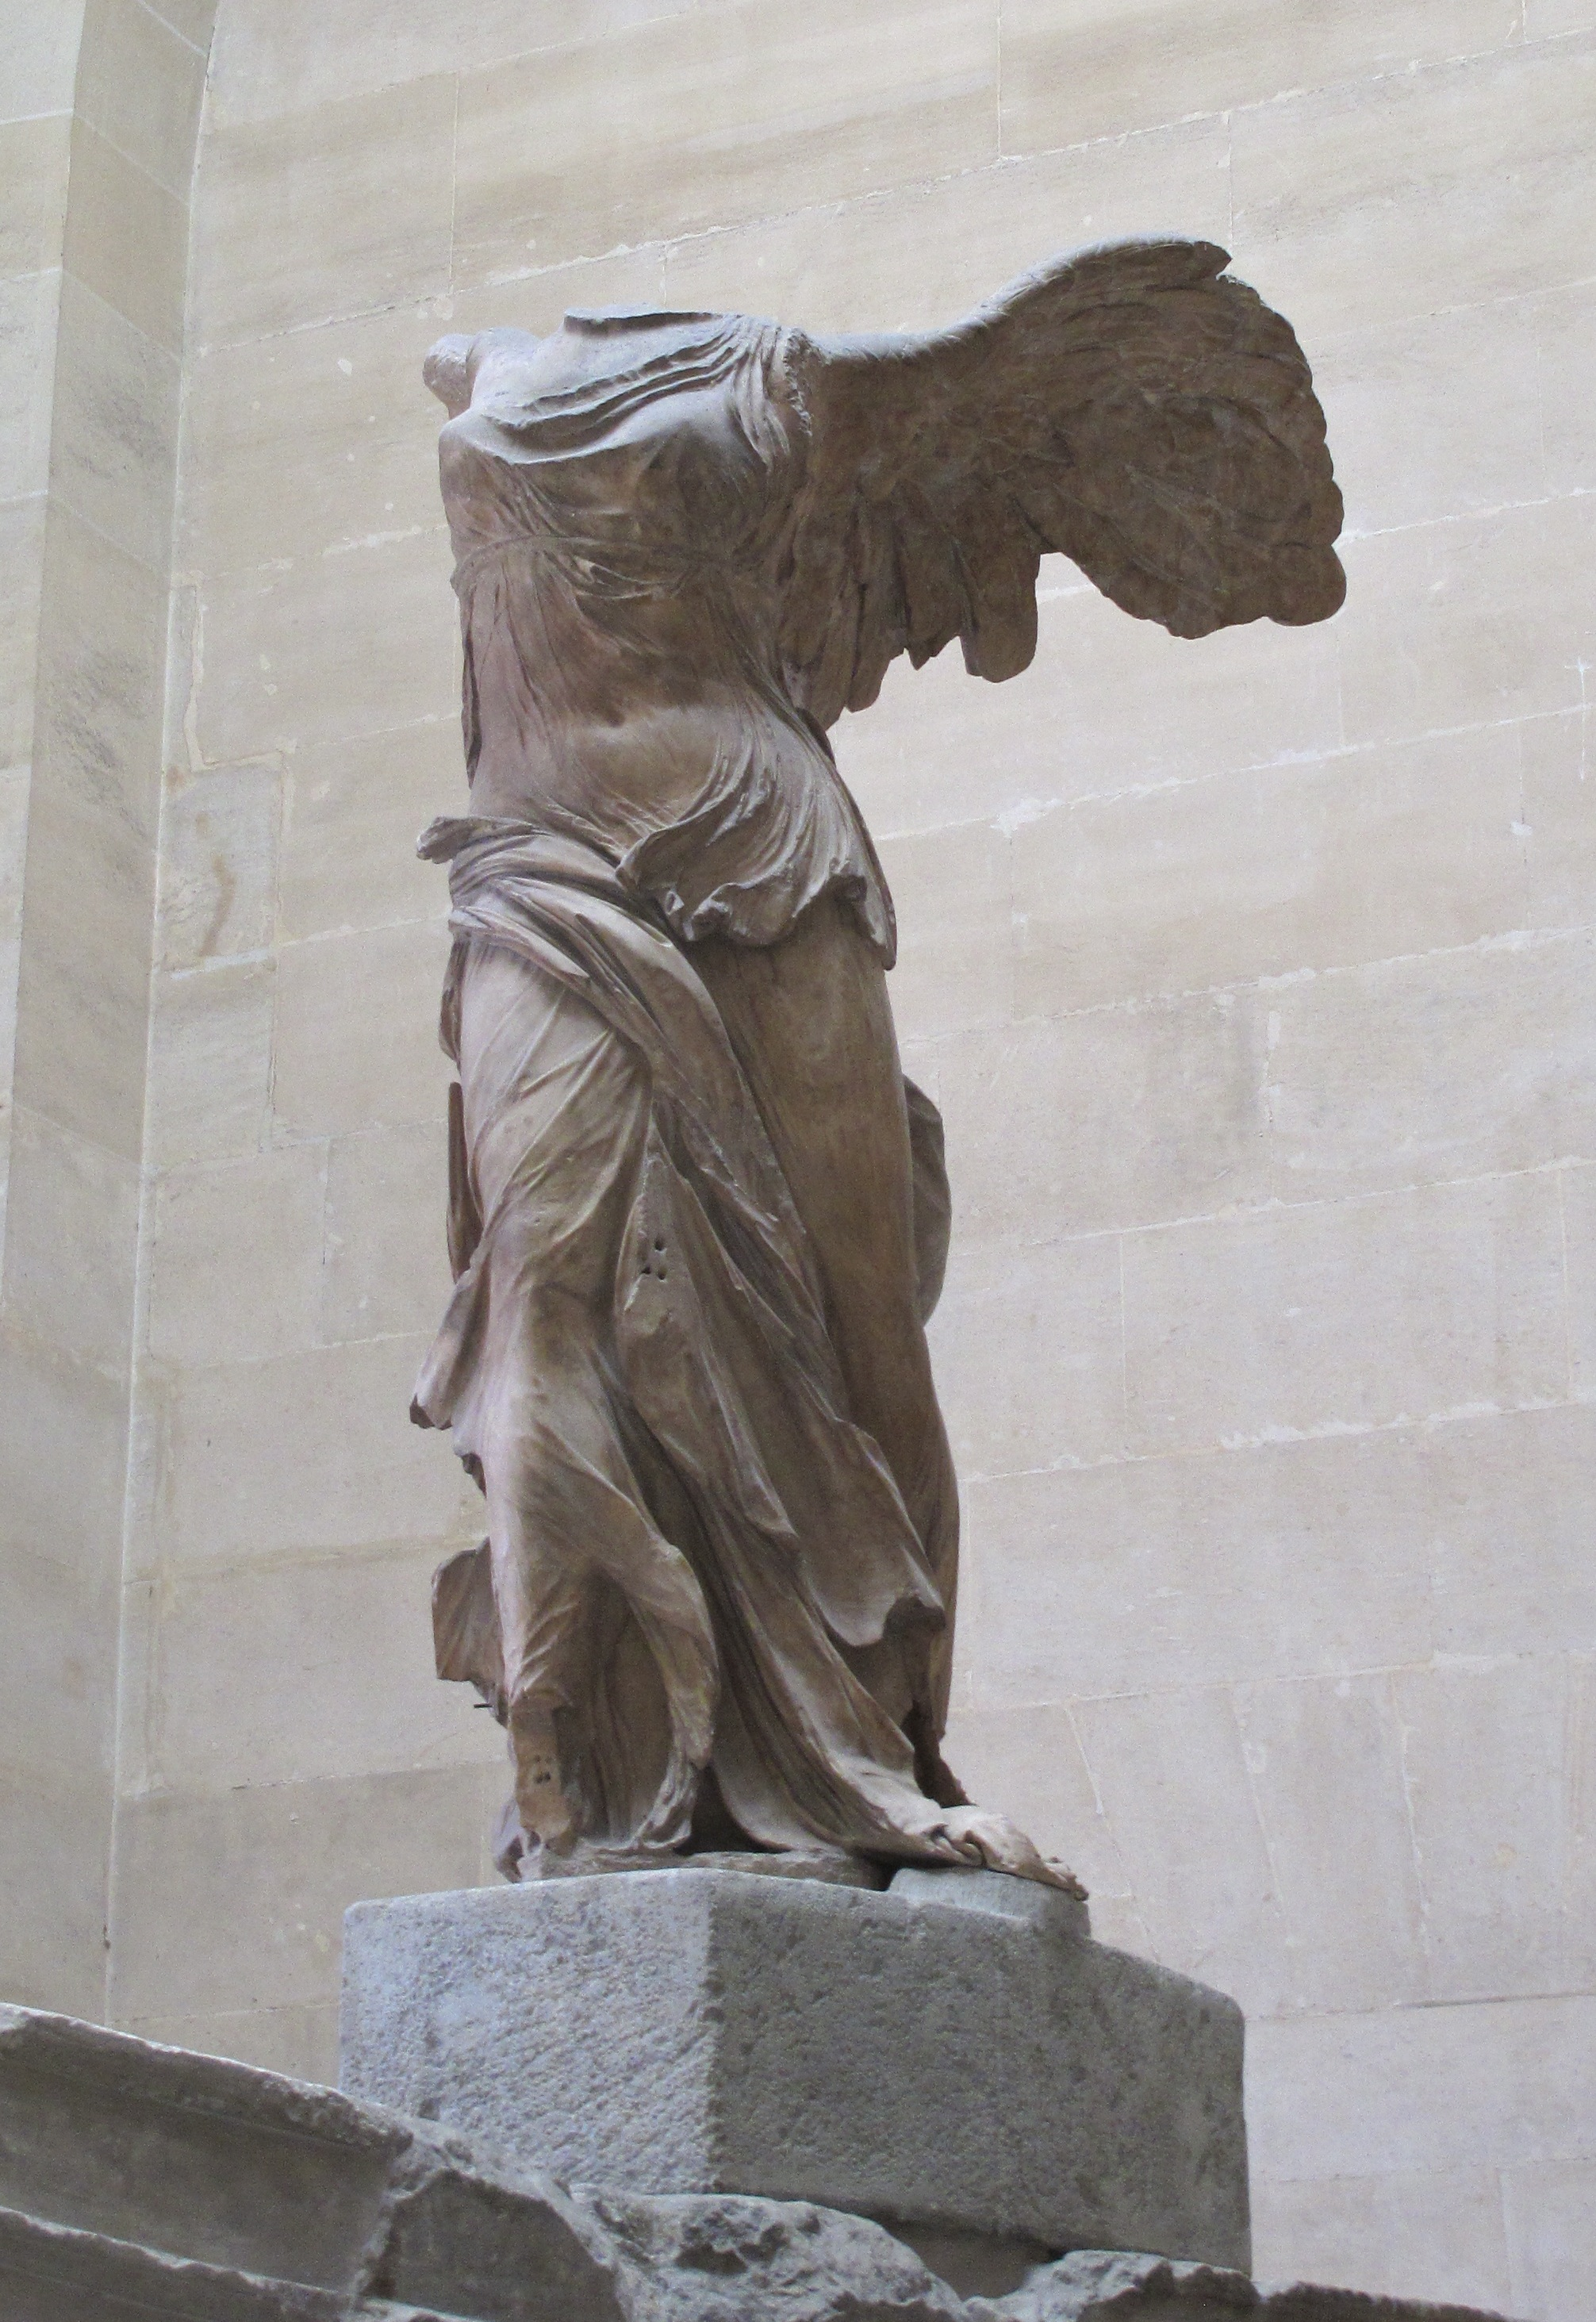 nike of samrothrace Nike (winged victory) of samothrace, lartos marble (ship) and parian marble (figure), c 190 bce 328m high, hellenistic period (musée du louvre, paris.